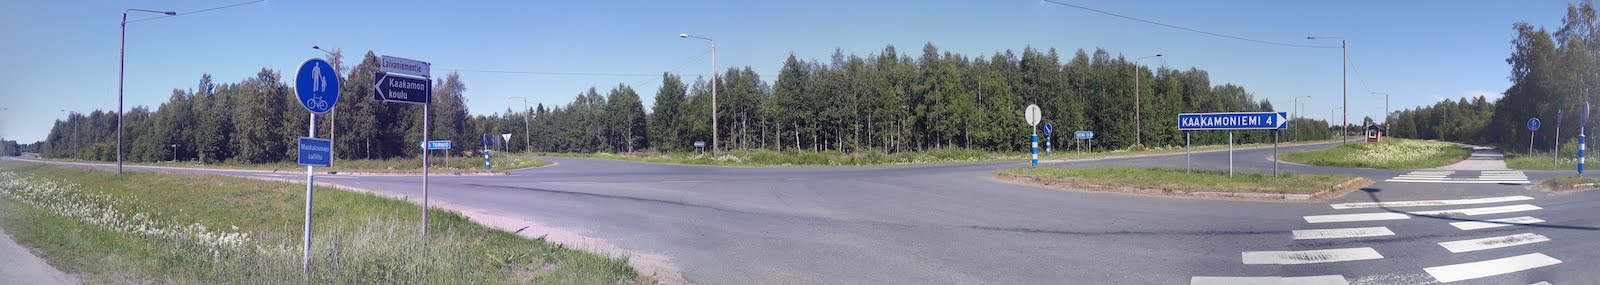 An intersection on my way to Kemi Finland